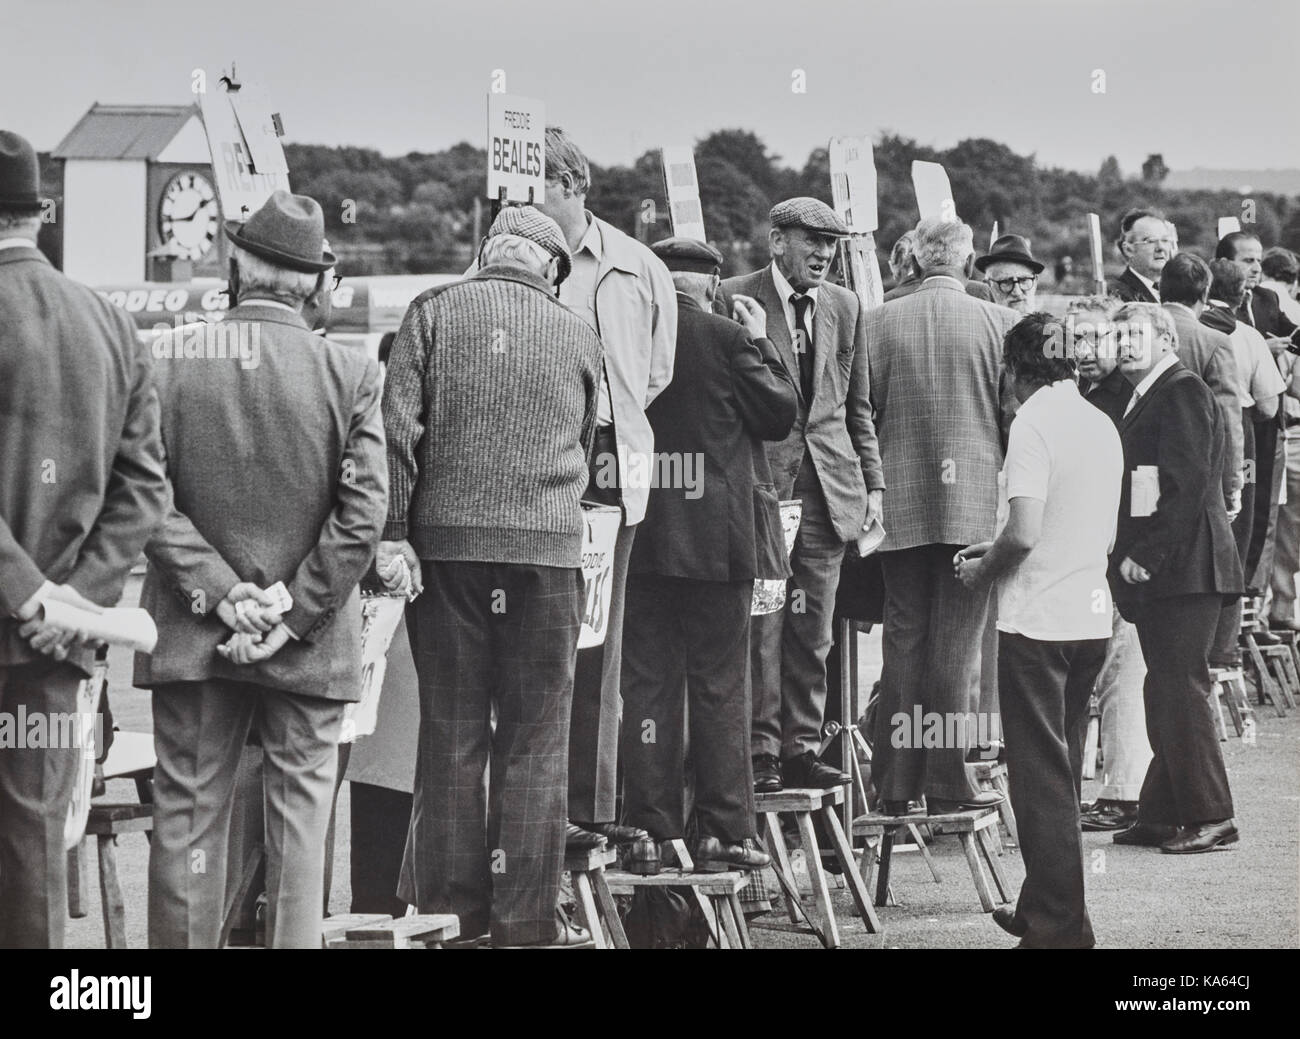 Bookies at Sandown Park in 1983 - Stock Image